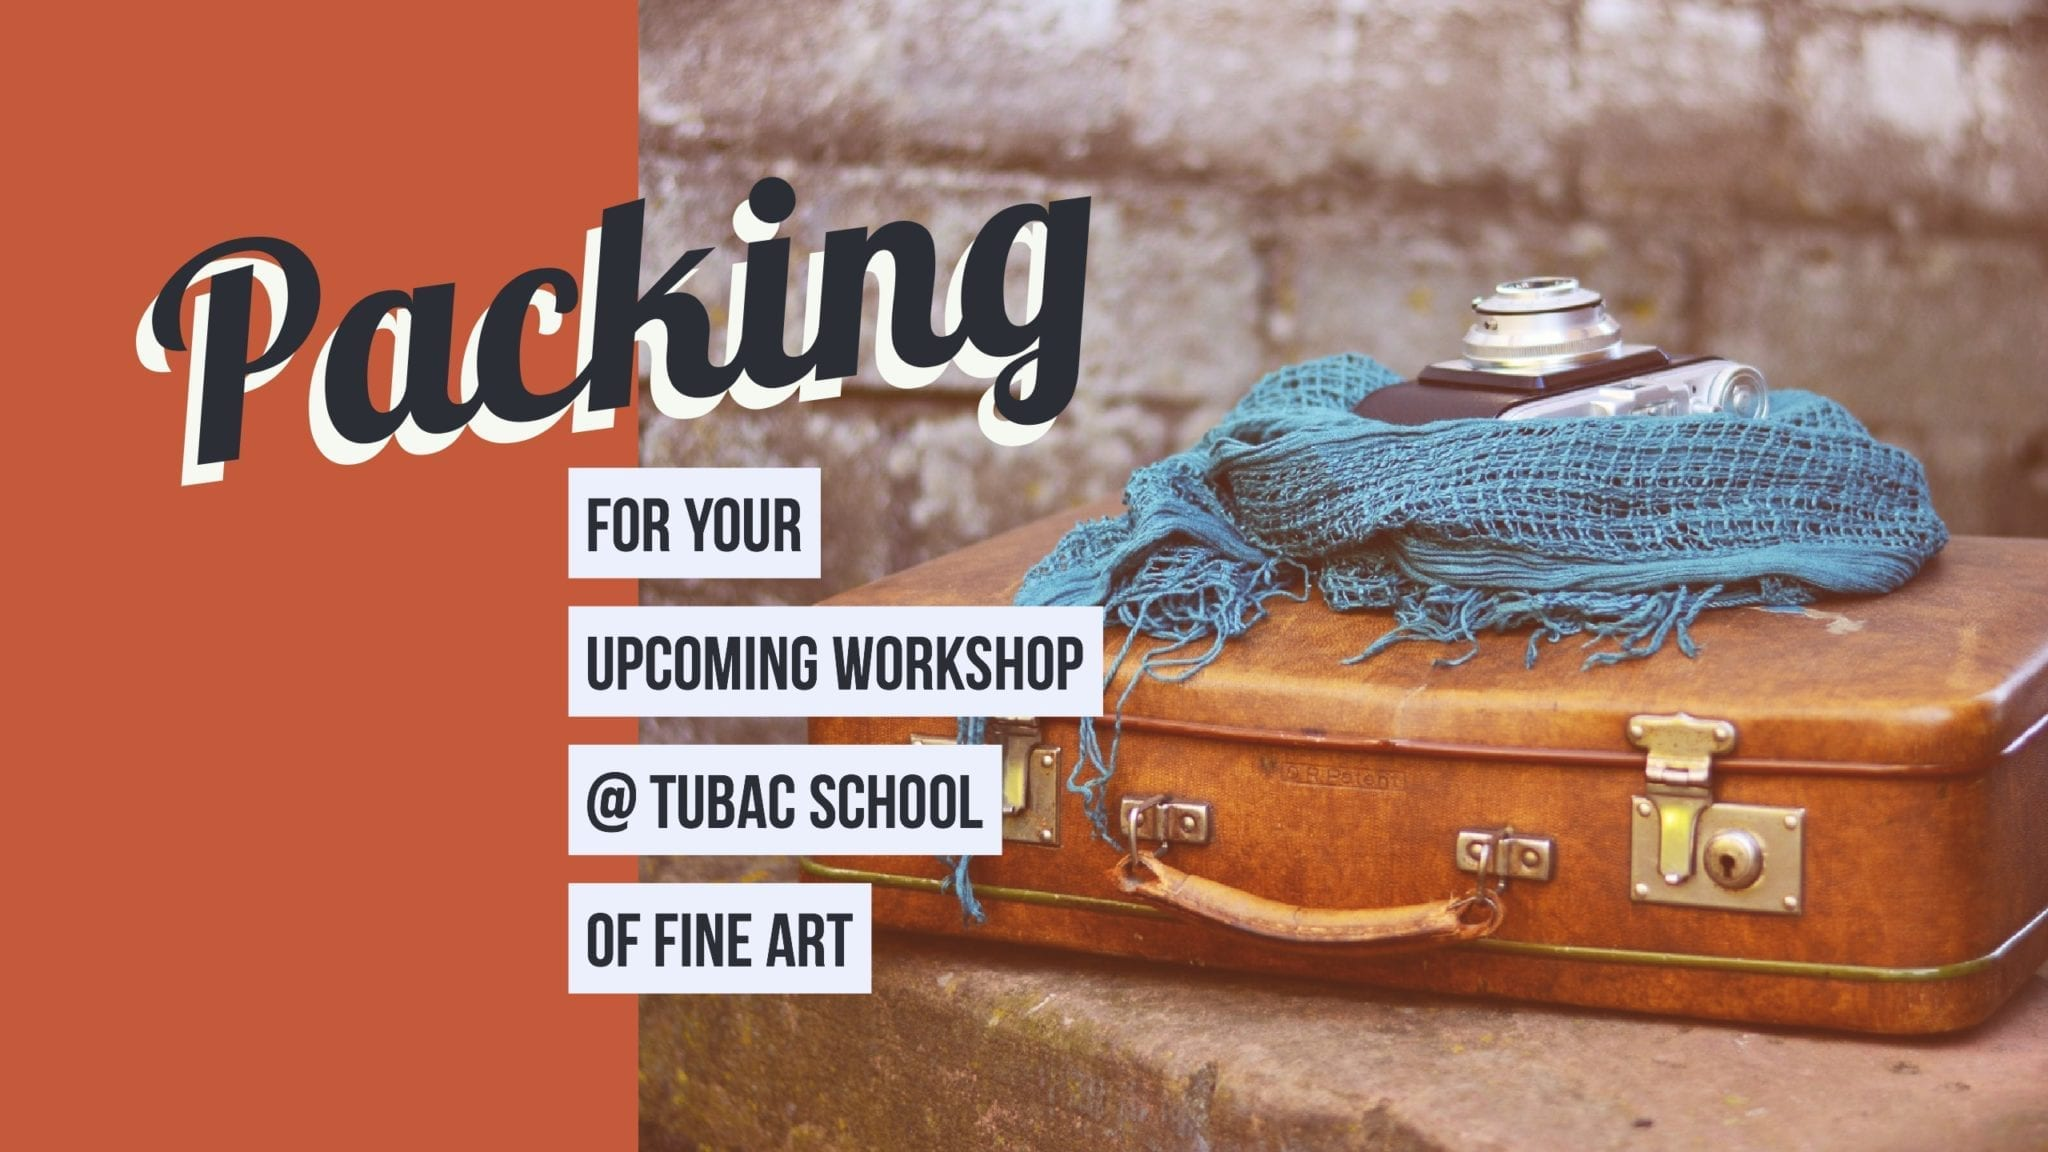 Packing for your upcoming Workshop in Tubac